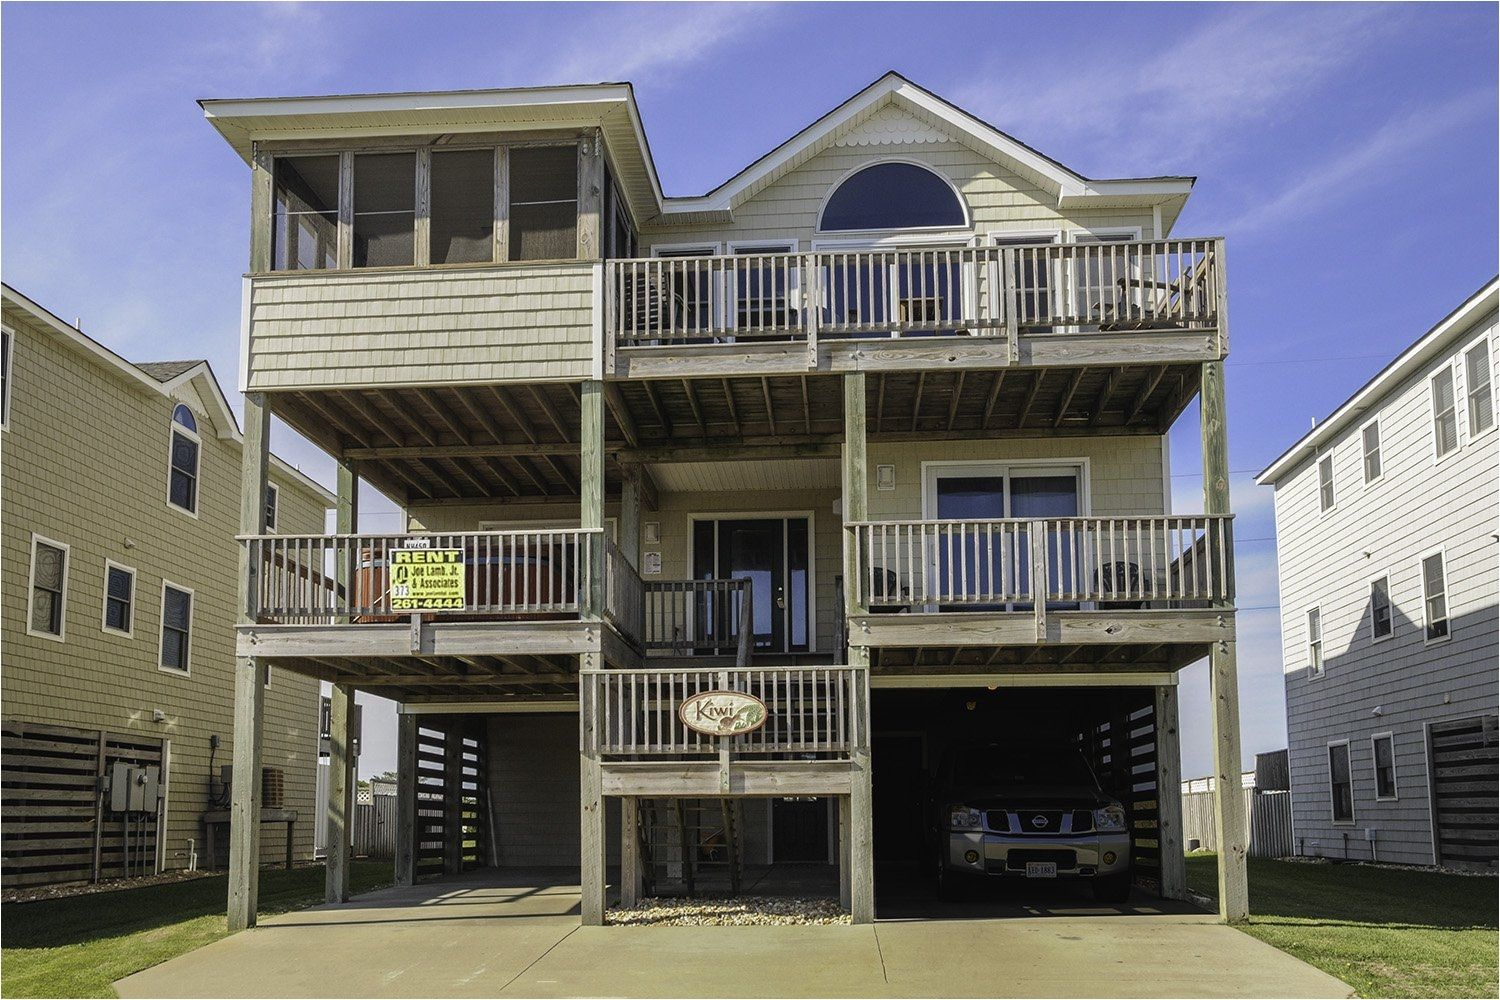 12 Bedroom Vacation Rental north Carolina Outer banks